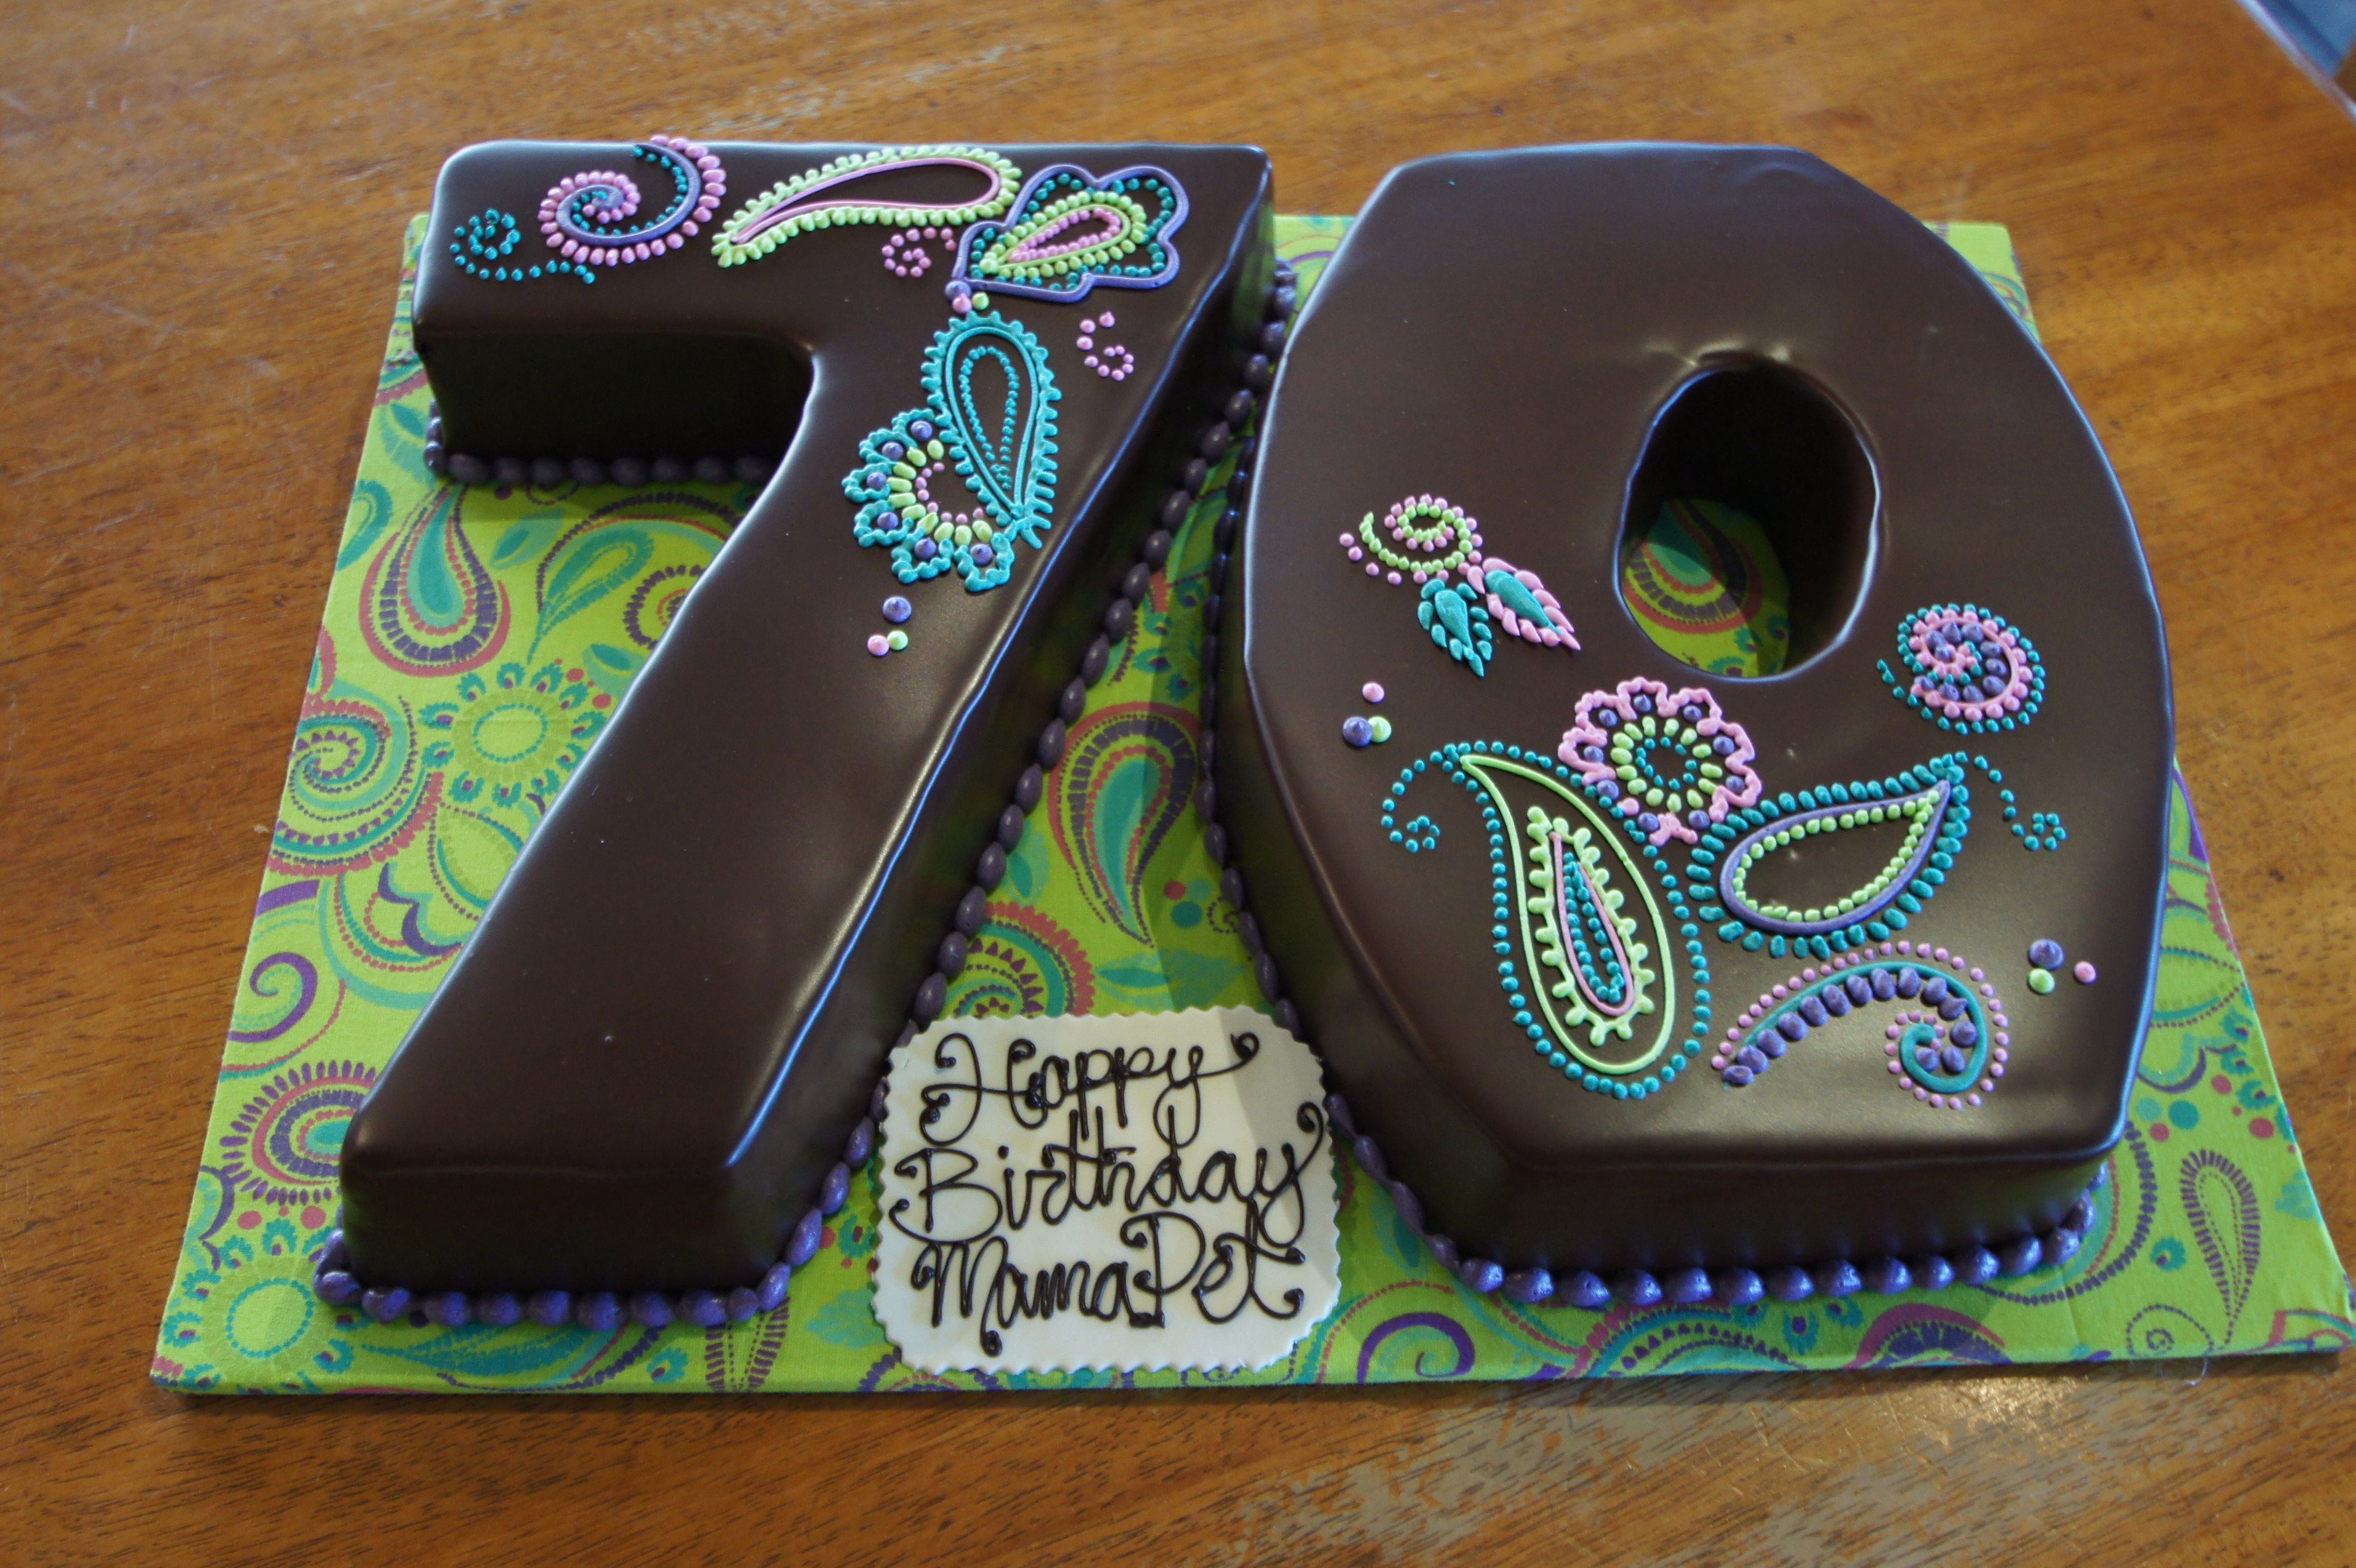 Number 70 Shaped Chocolate Birthday Cakes With Colorful Paisley